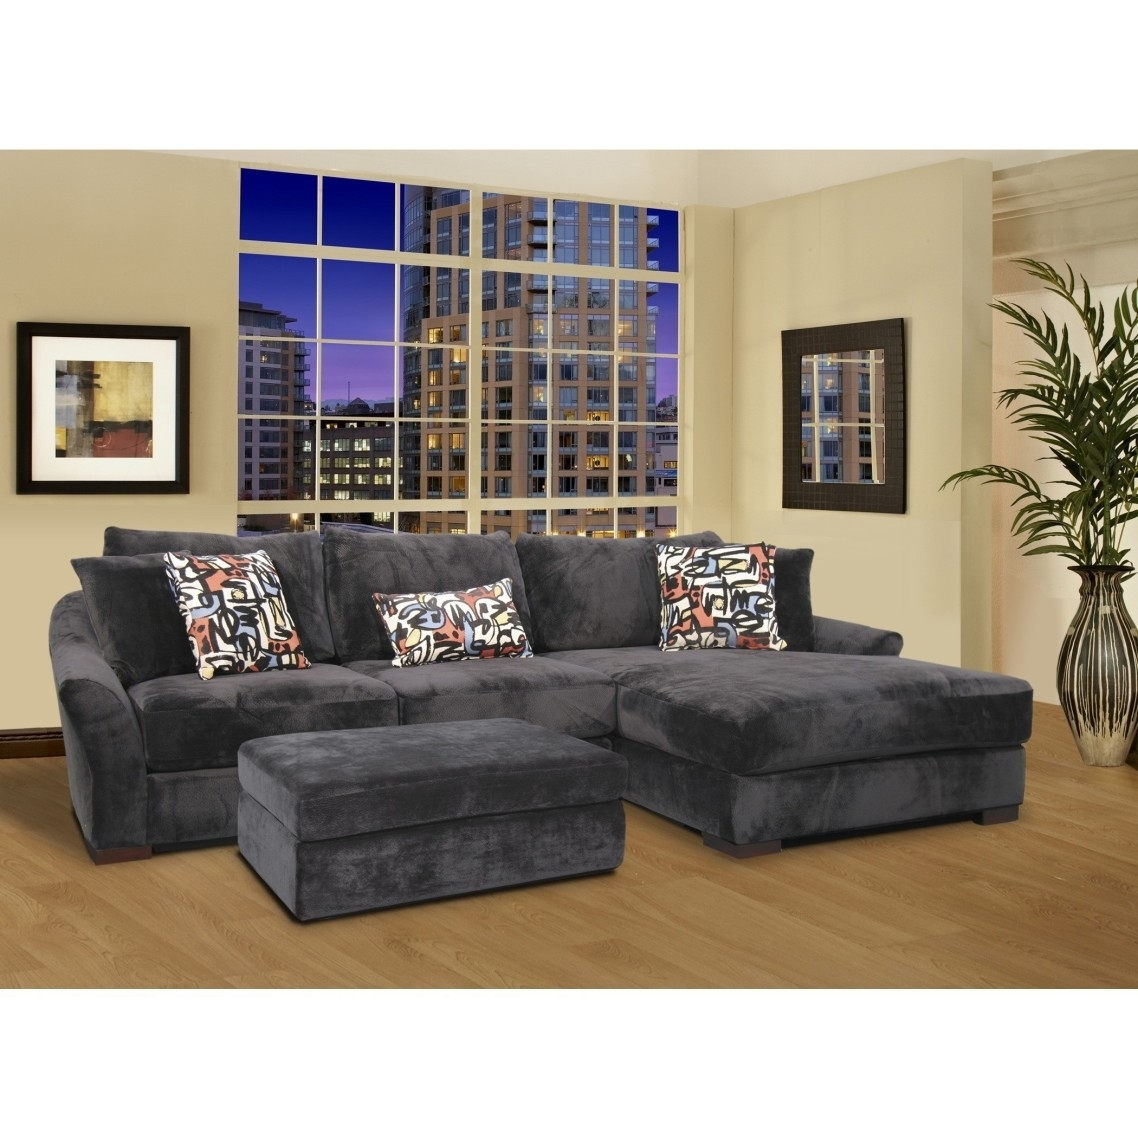 Gray Velvet Oversized Sectional Sleeper Sofa With Left Chaise pertaining to Sectional Sleeper Sofas With Ottoman (Image 8 of 15)